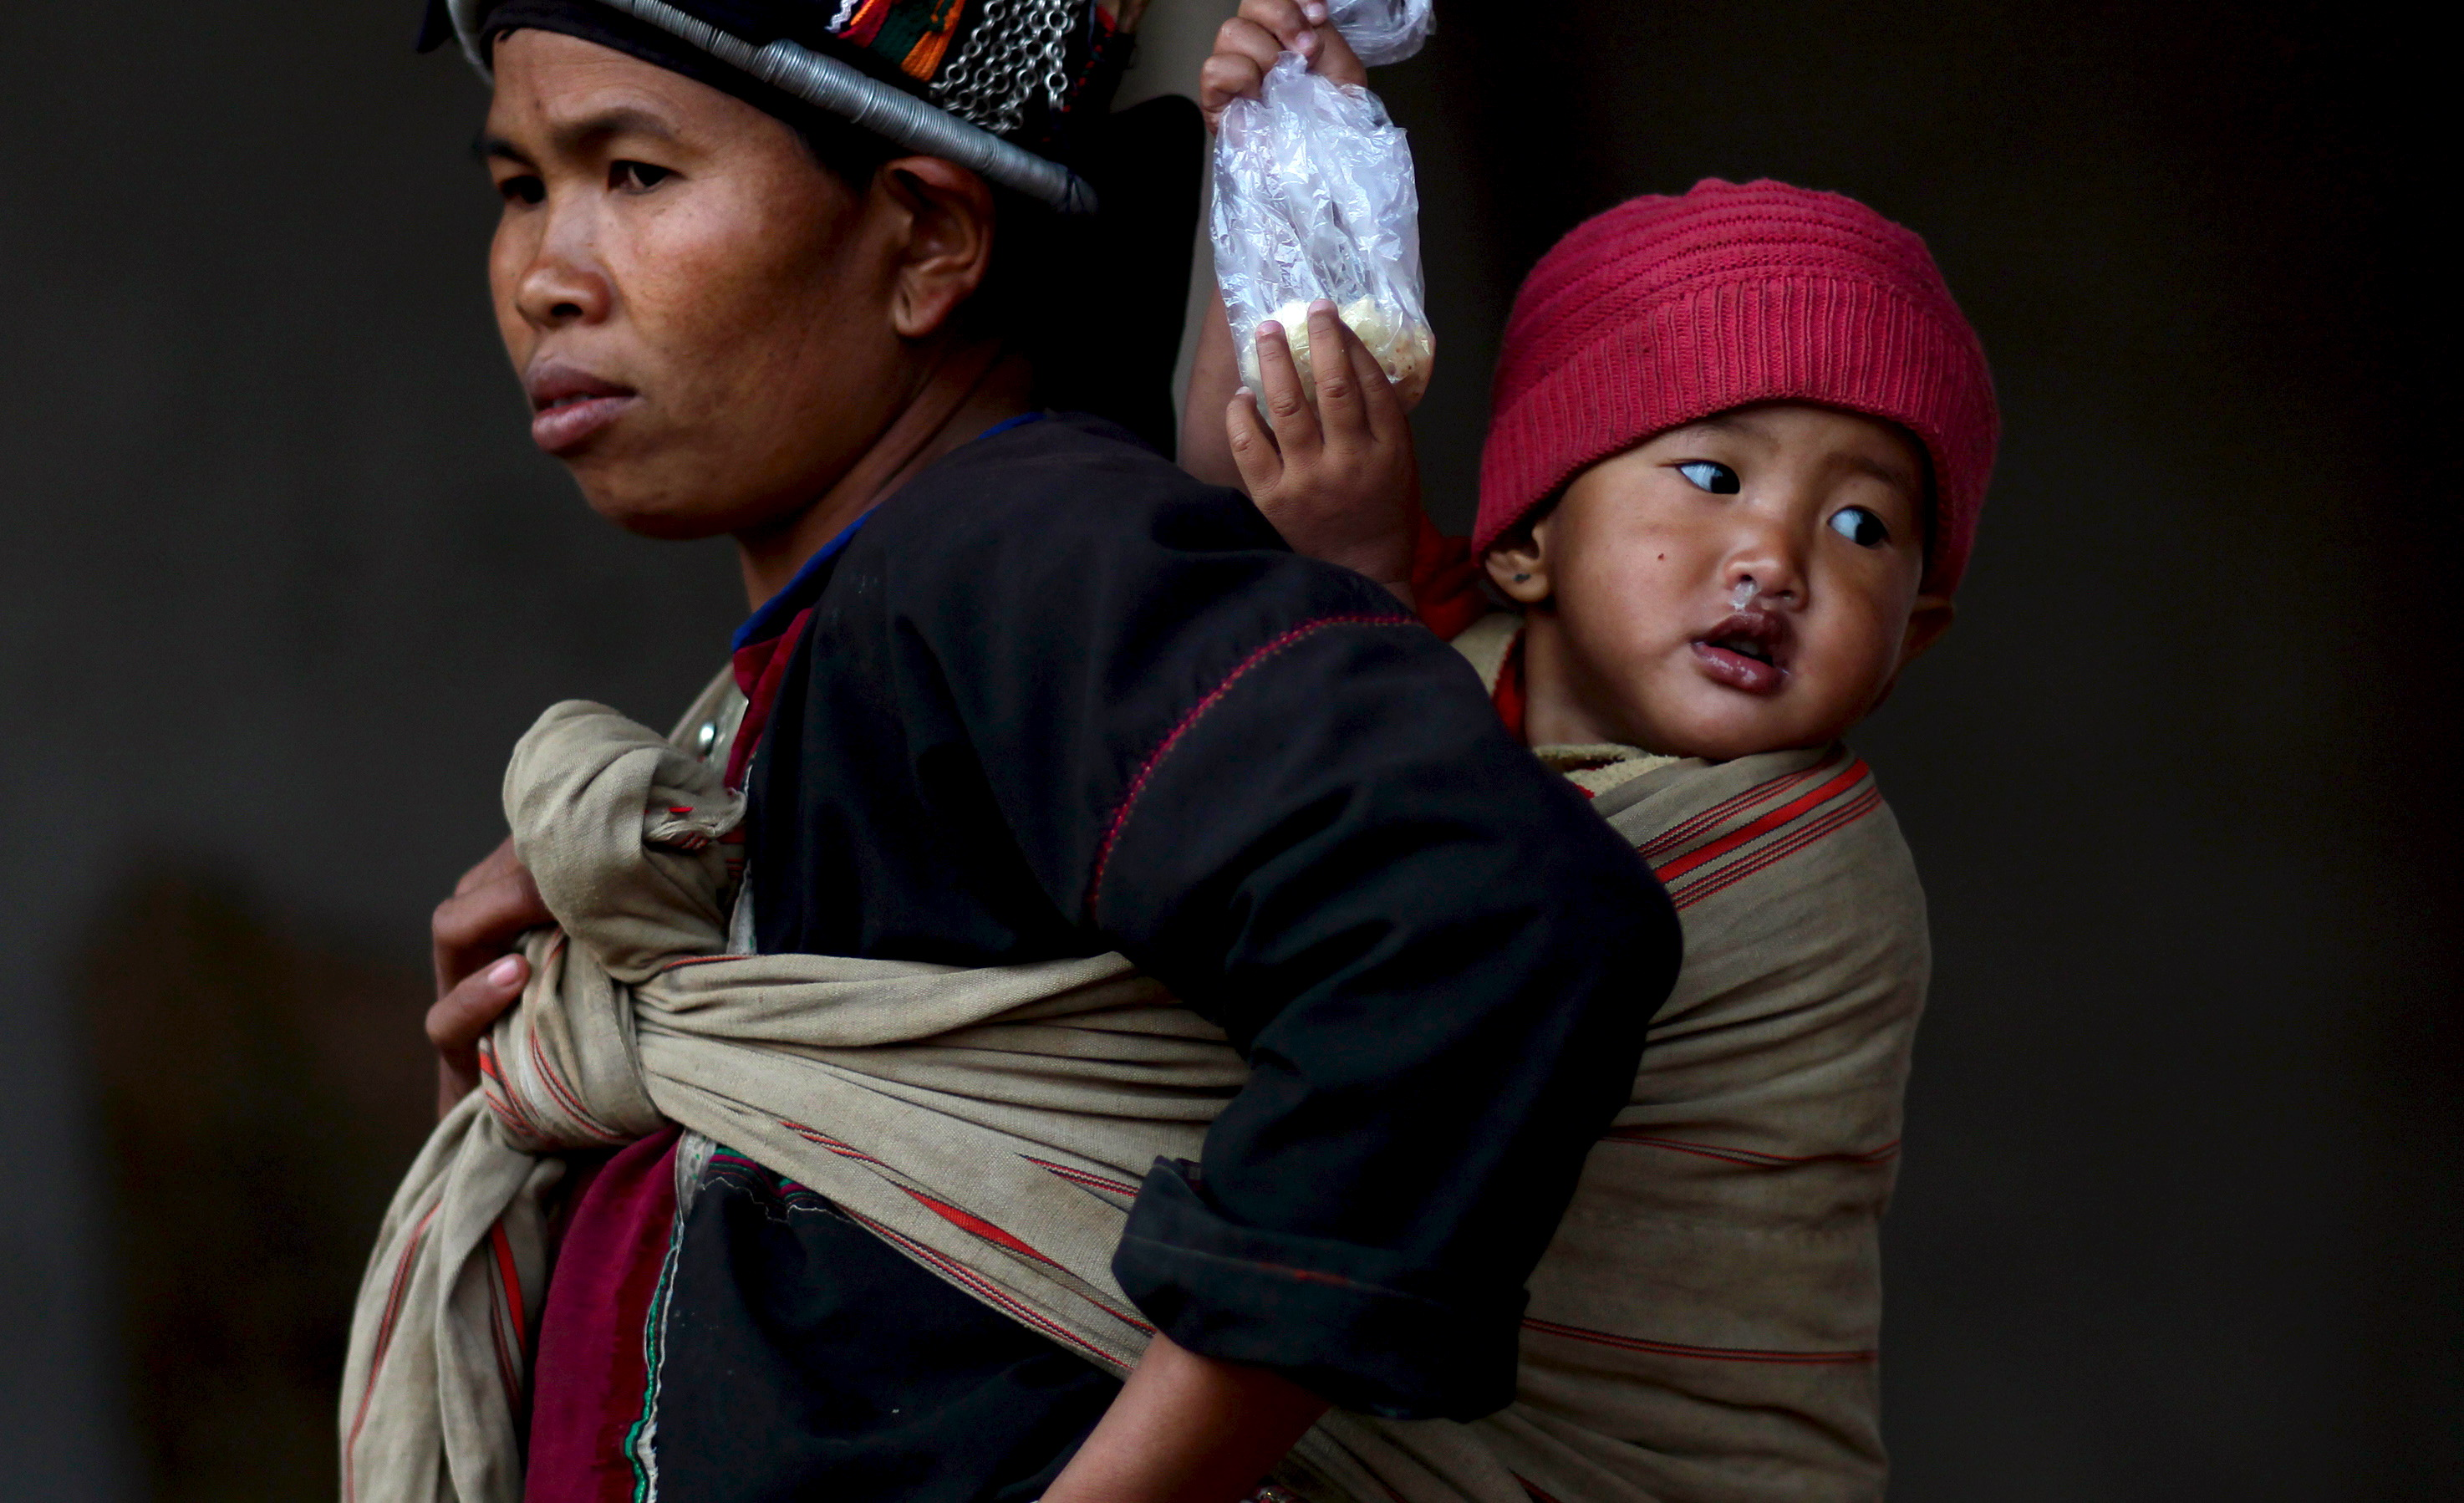 A woman carries her baby at a refugee camp in Kokang at Myanmar's border with China, on March 24, 2015. Photo by Wong Campion/Reuters